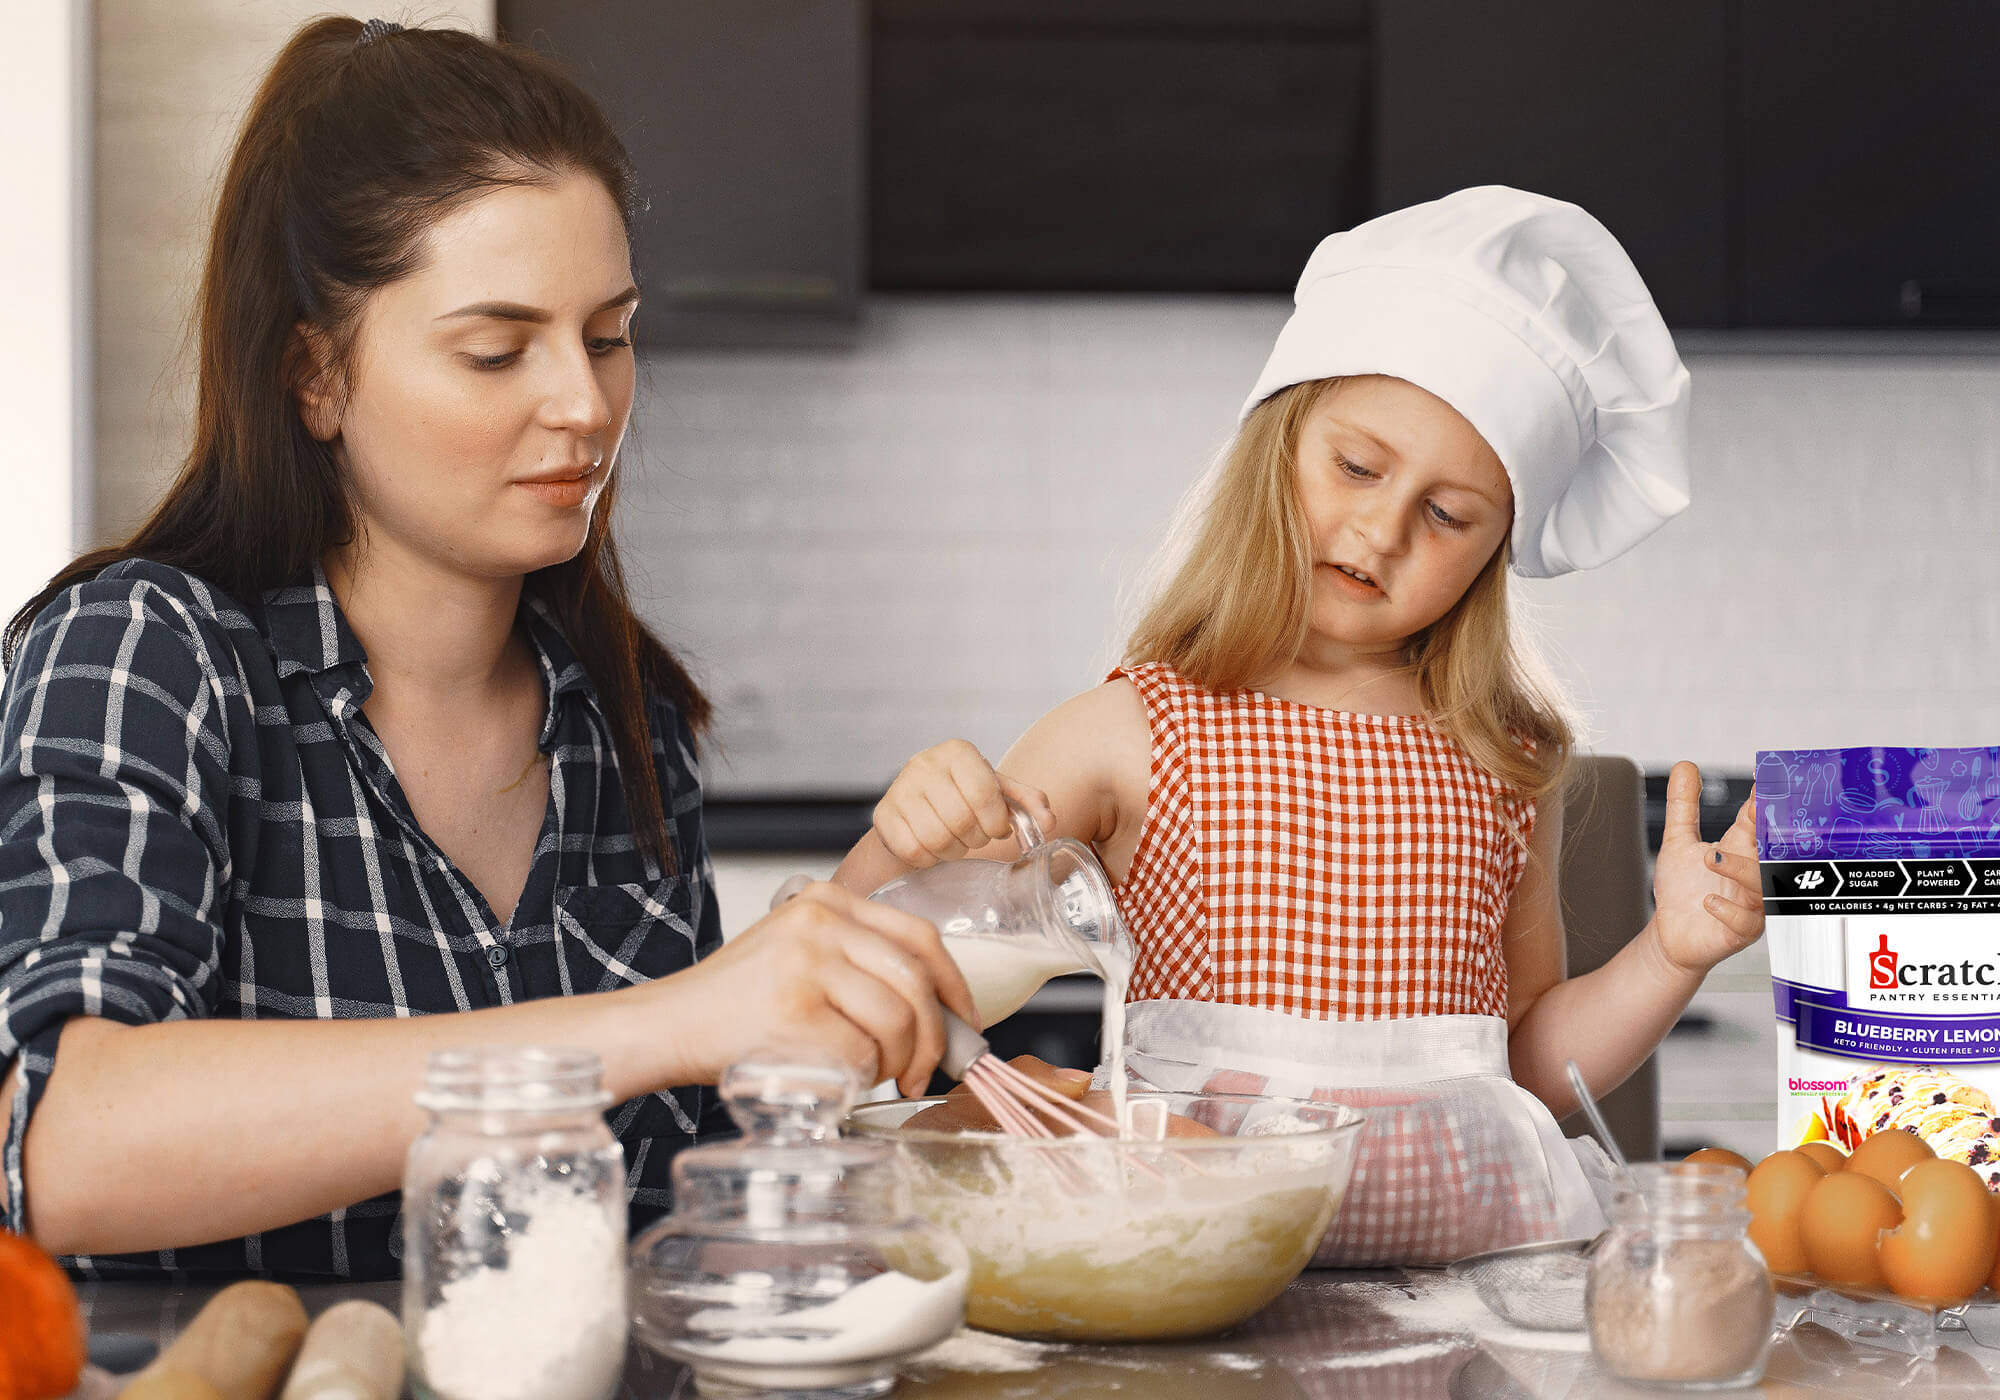 Scratch Kitchen Co   Fun Healthy Cooking-2